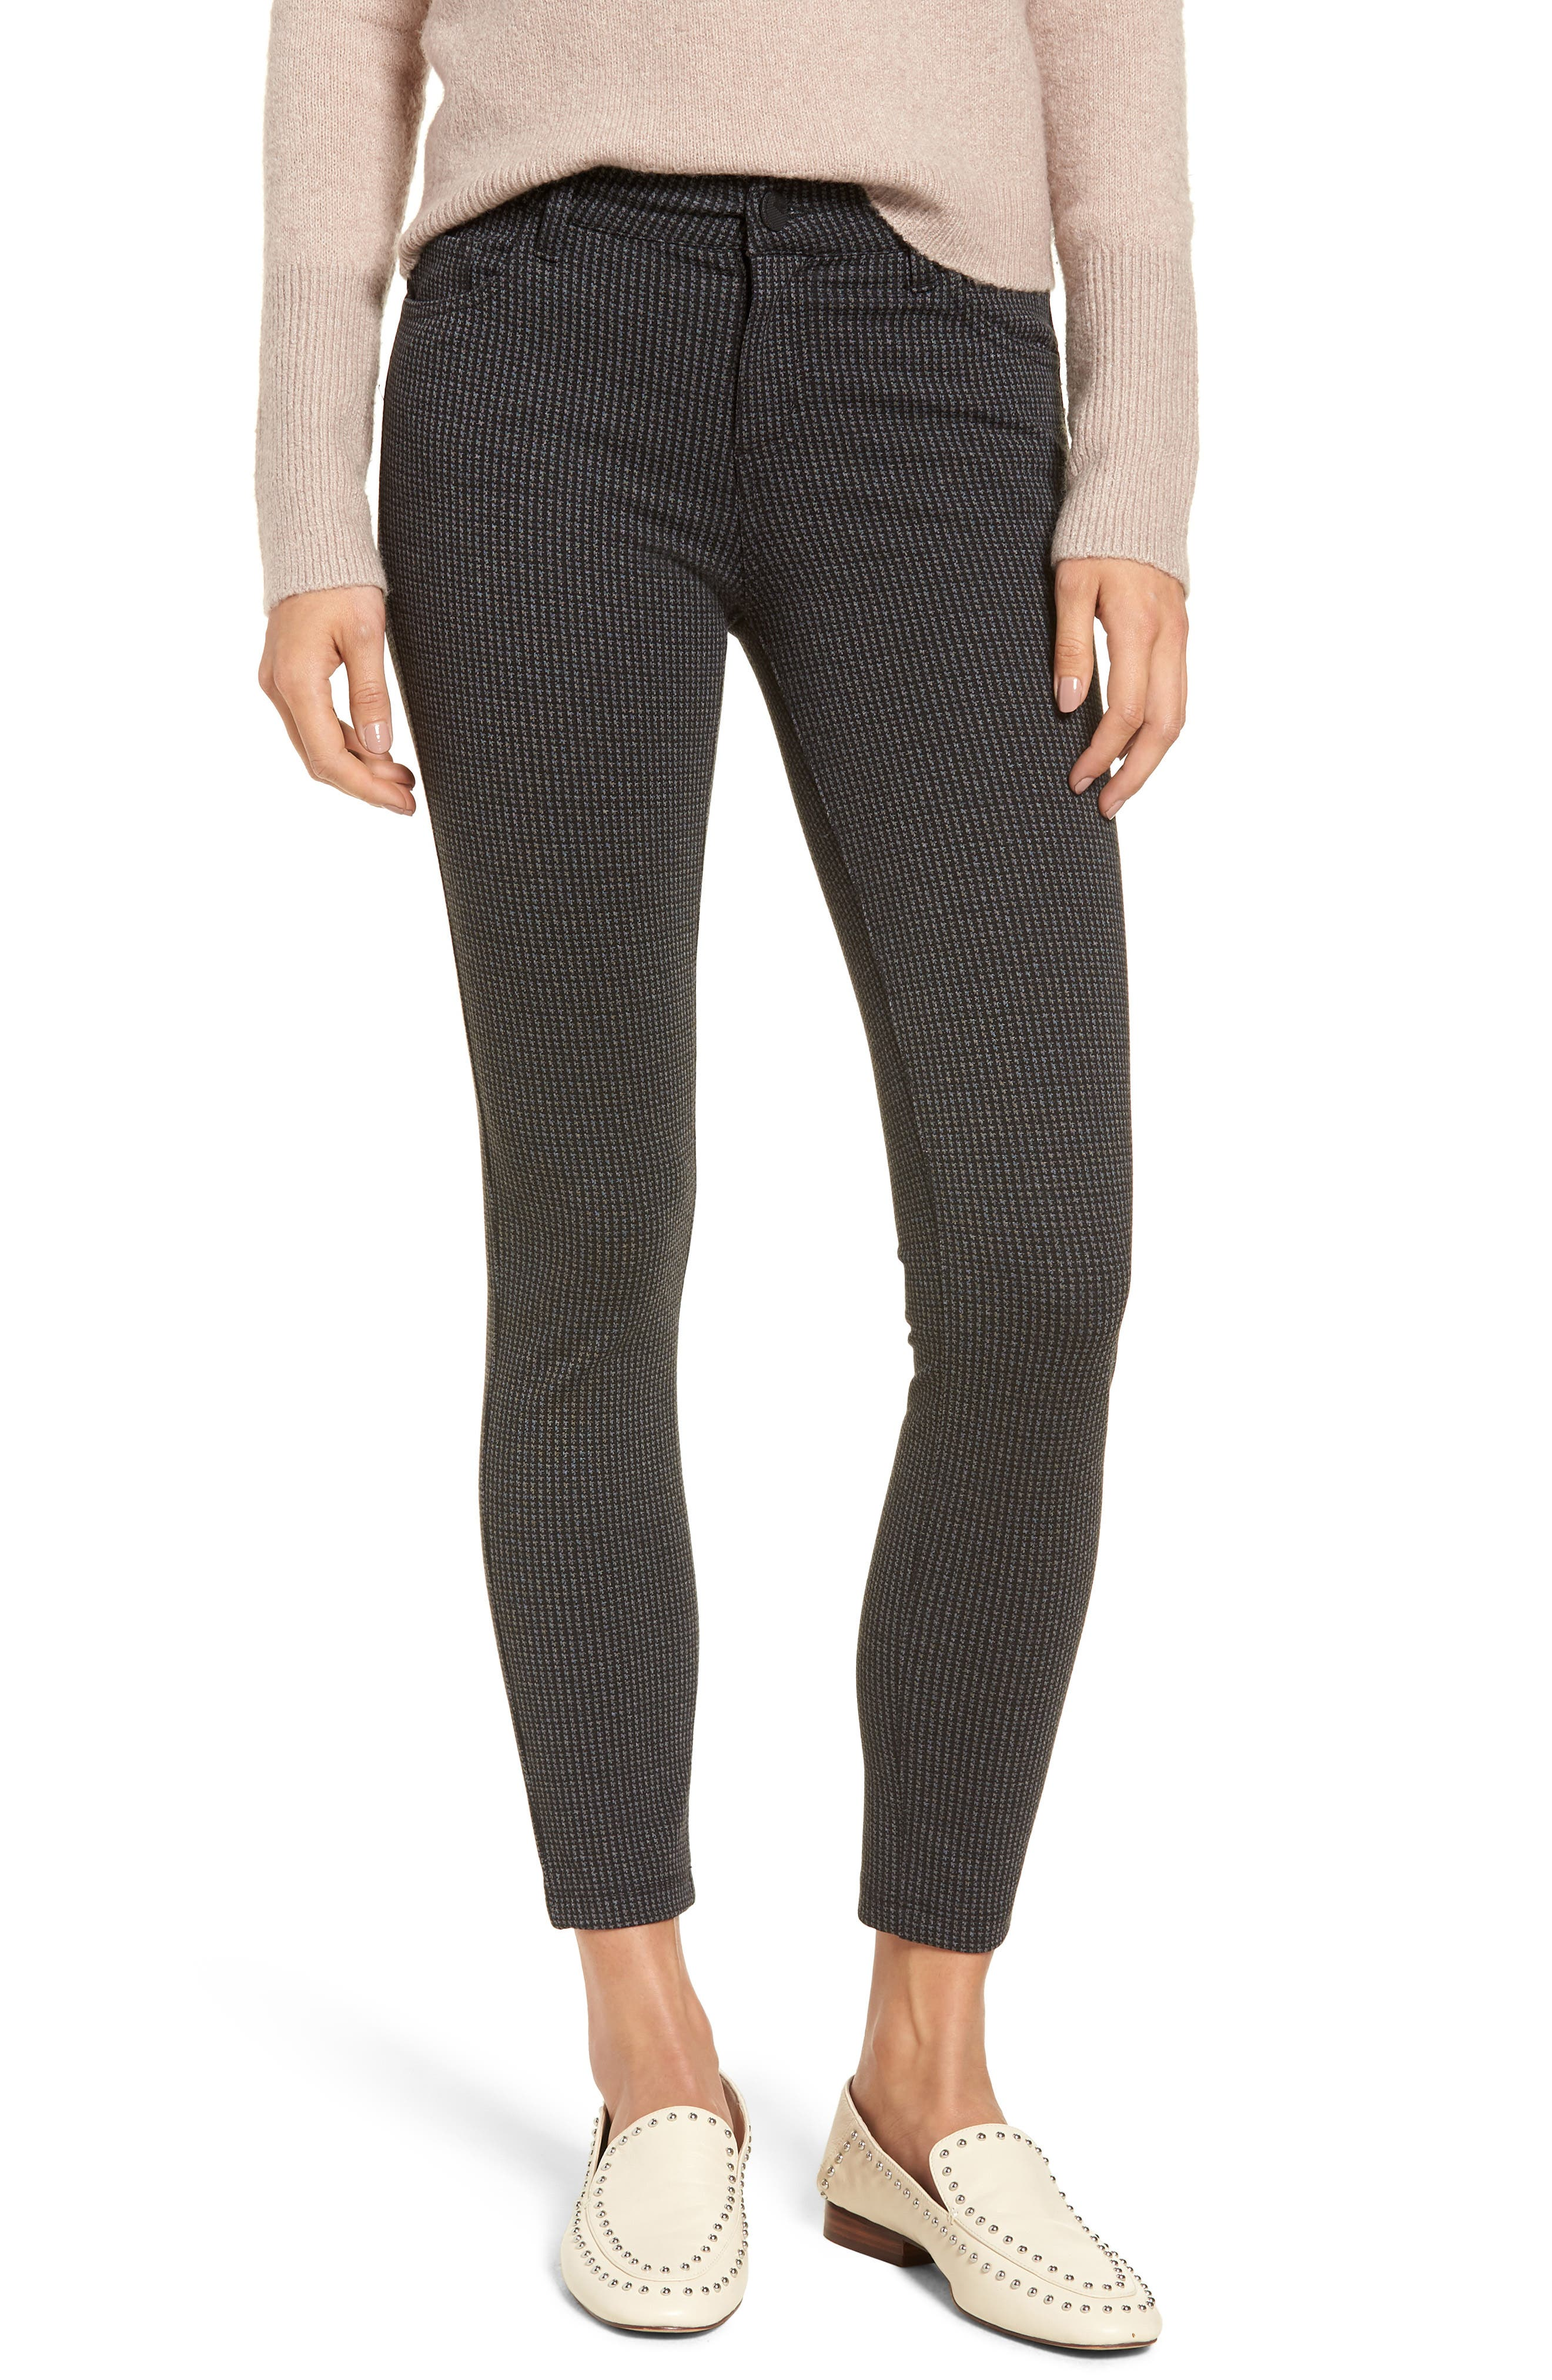 KUT from the Kloth Donna Print Ponte Knit Skinny Pants (Regular & Petite)